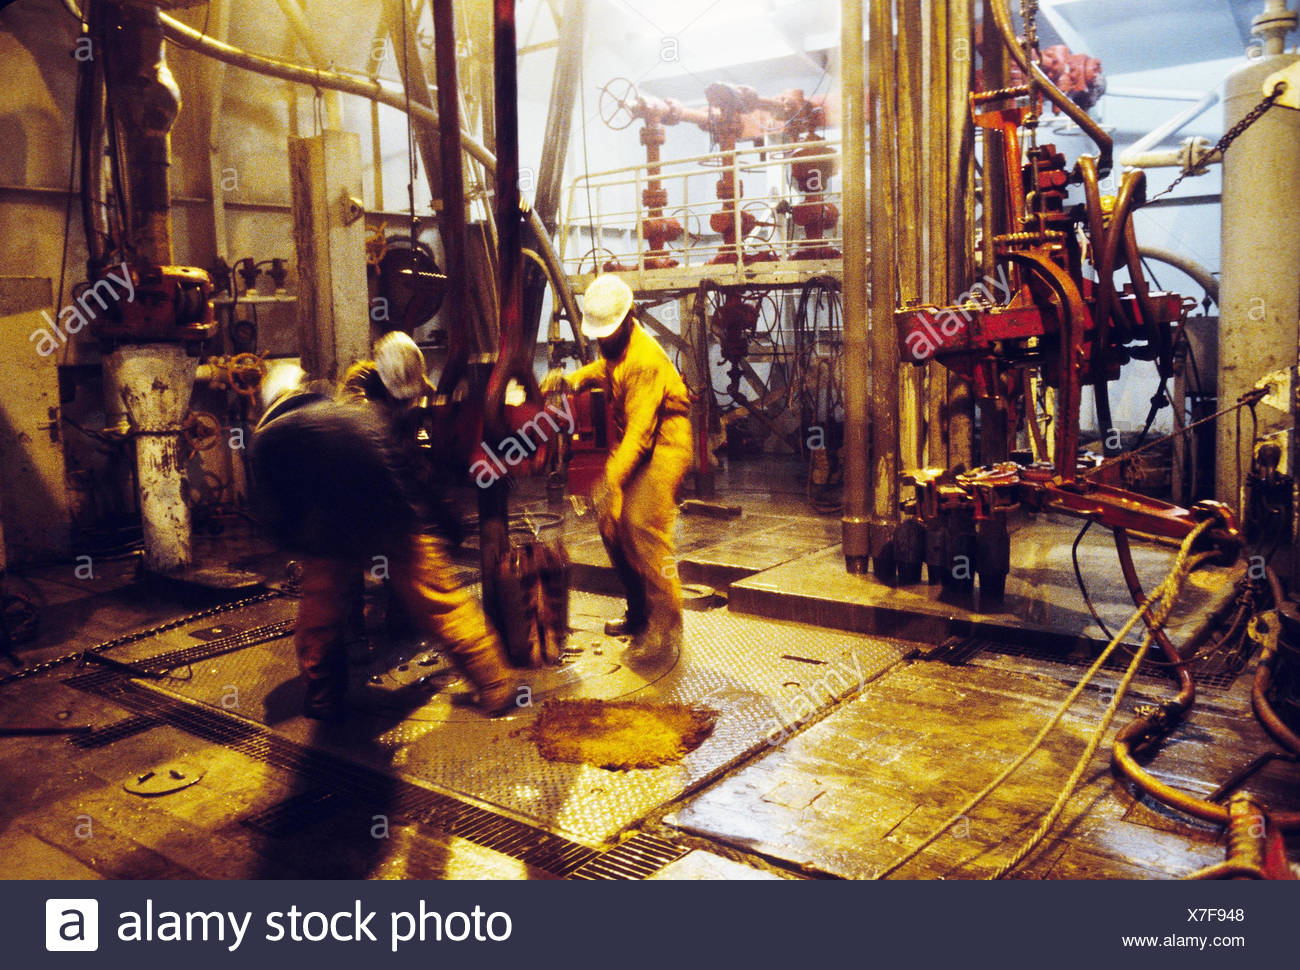 Drilling rig, deck, worker, bit, outside, economy, industry, oil, crude oil, drill pipe, drilling cap, oil industry, sea, work, work, crude oil industry, oil platform, drilling platform, raw material production, Offshoretechnik - Stock Image